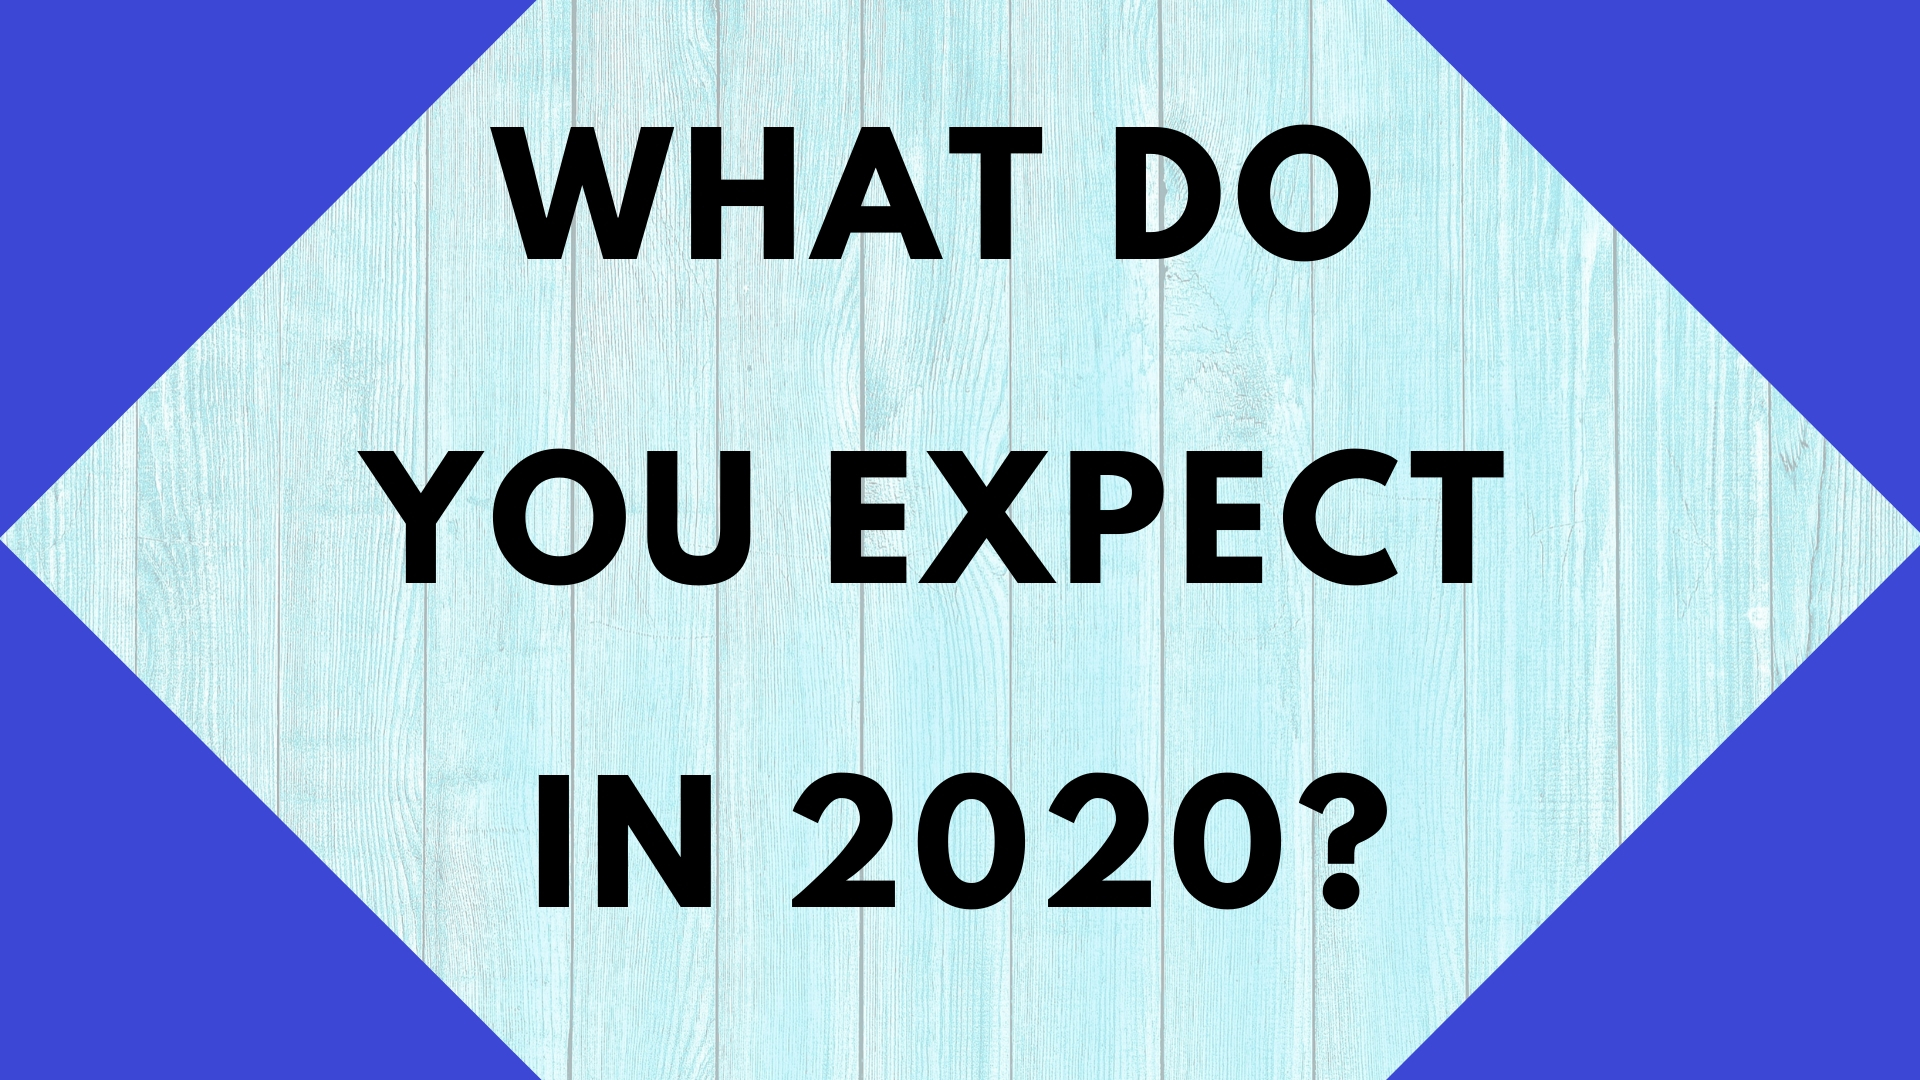 What Do You Expect in 2020?